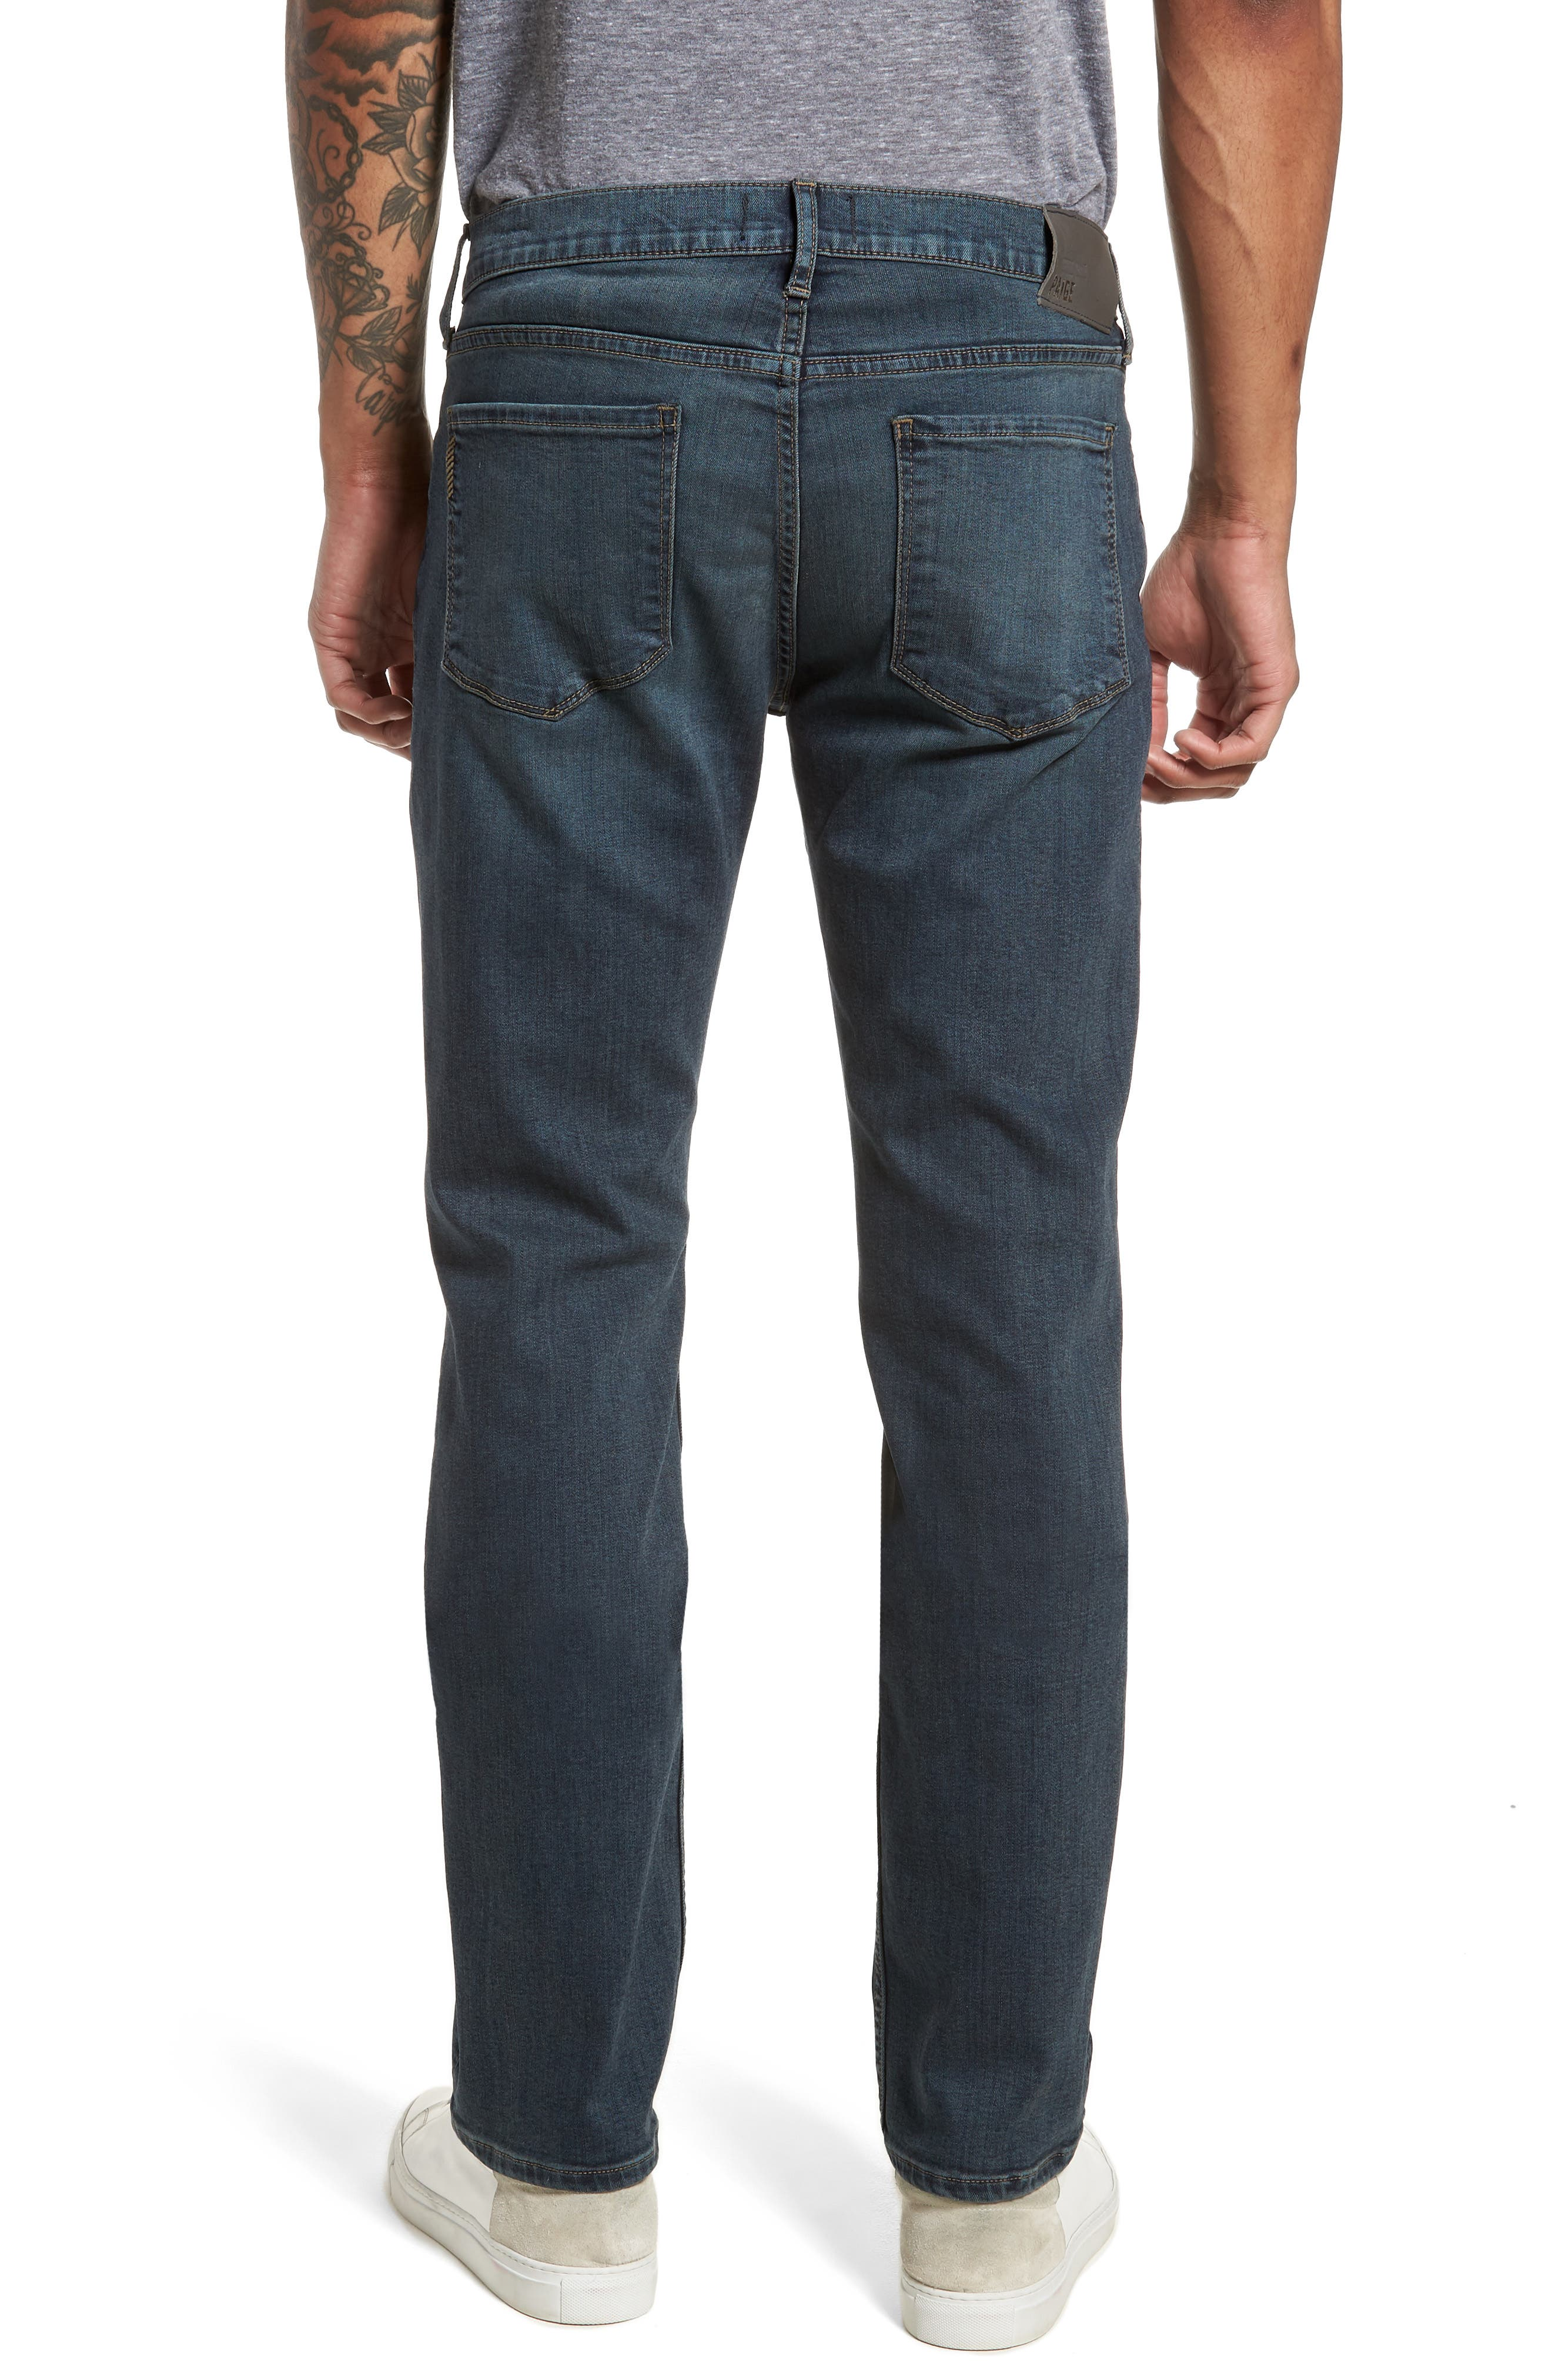 Byron Slim Straight Fit Jeans,                             Alternate thumbnail 2, color,                             424